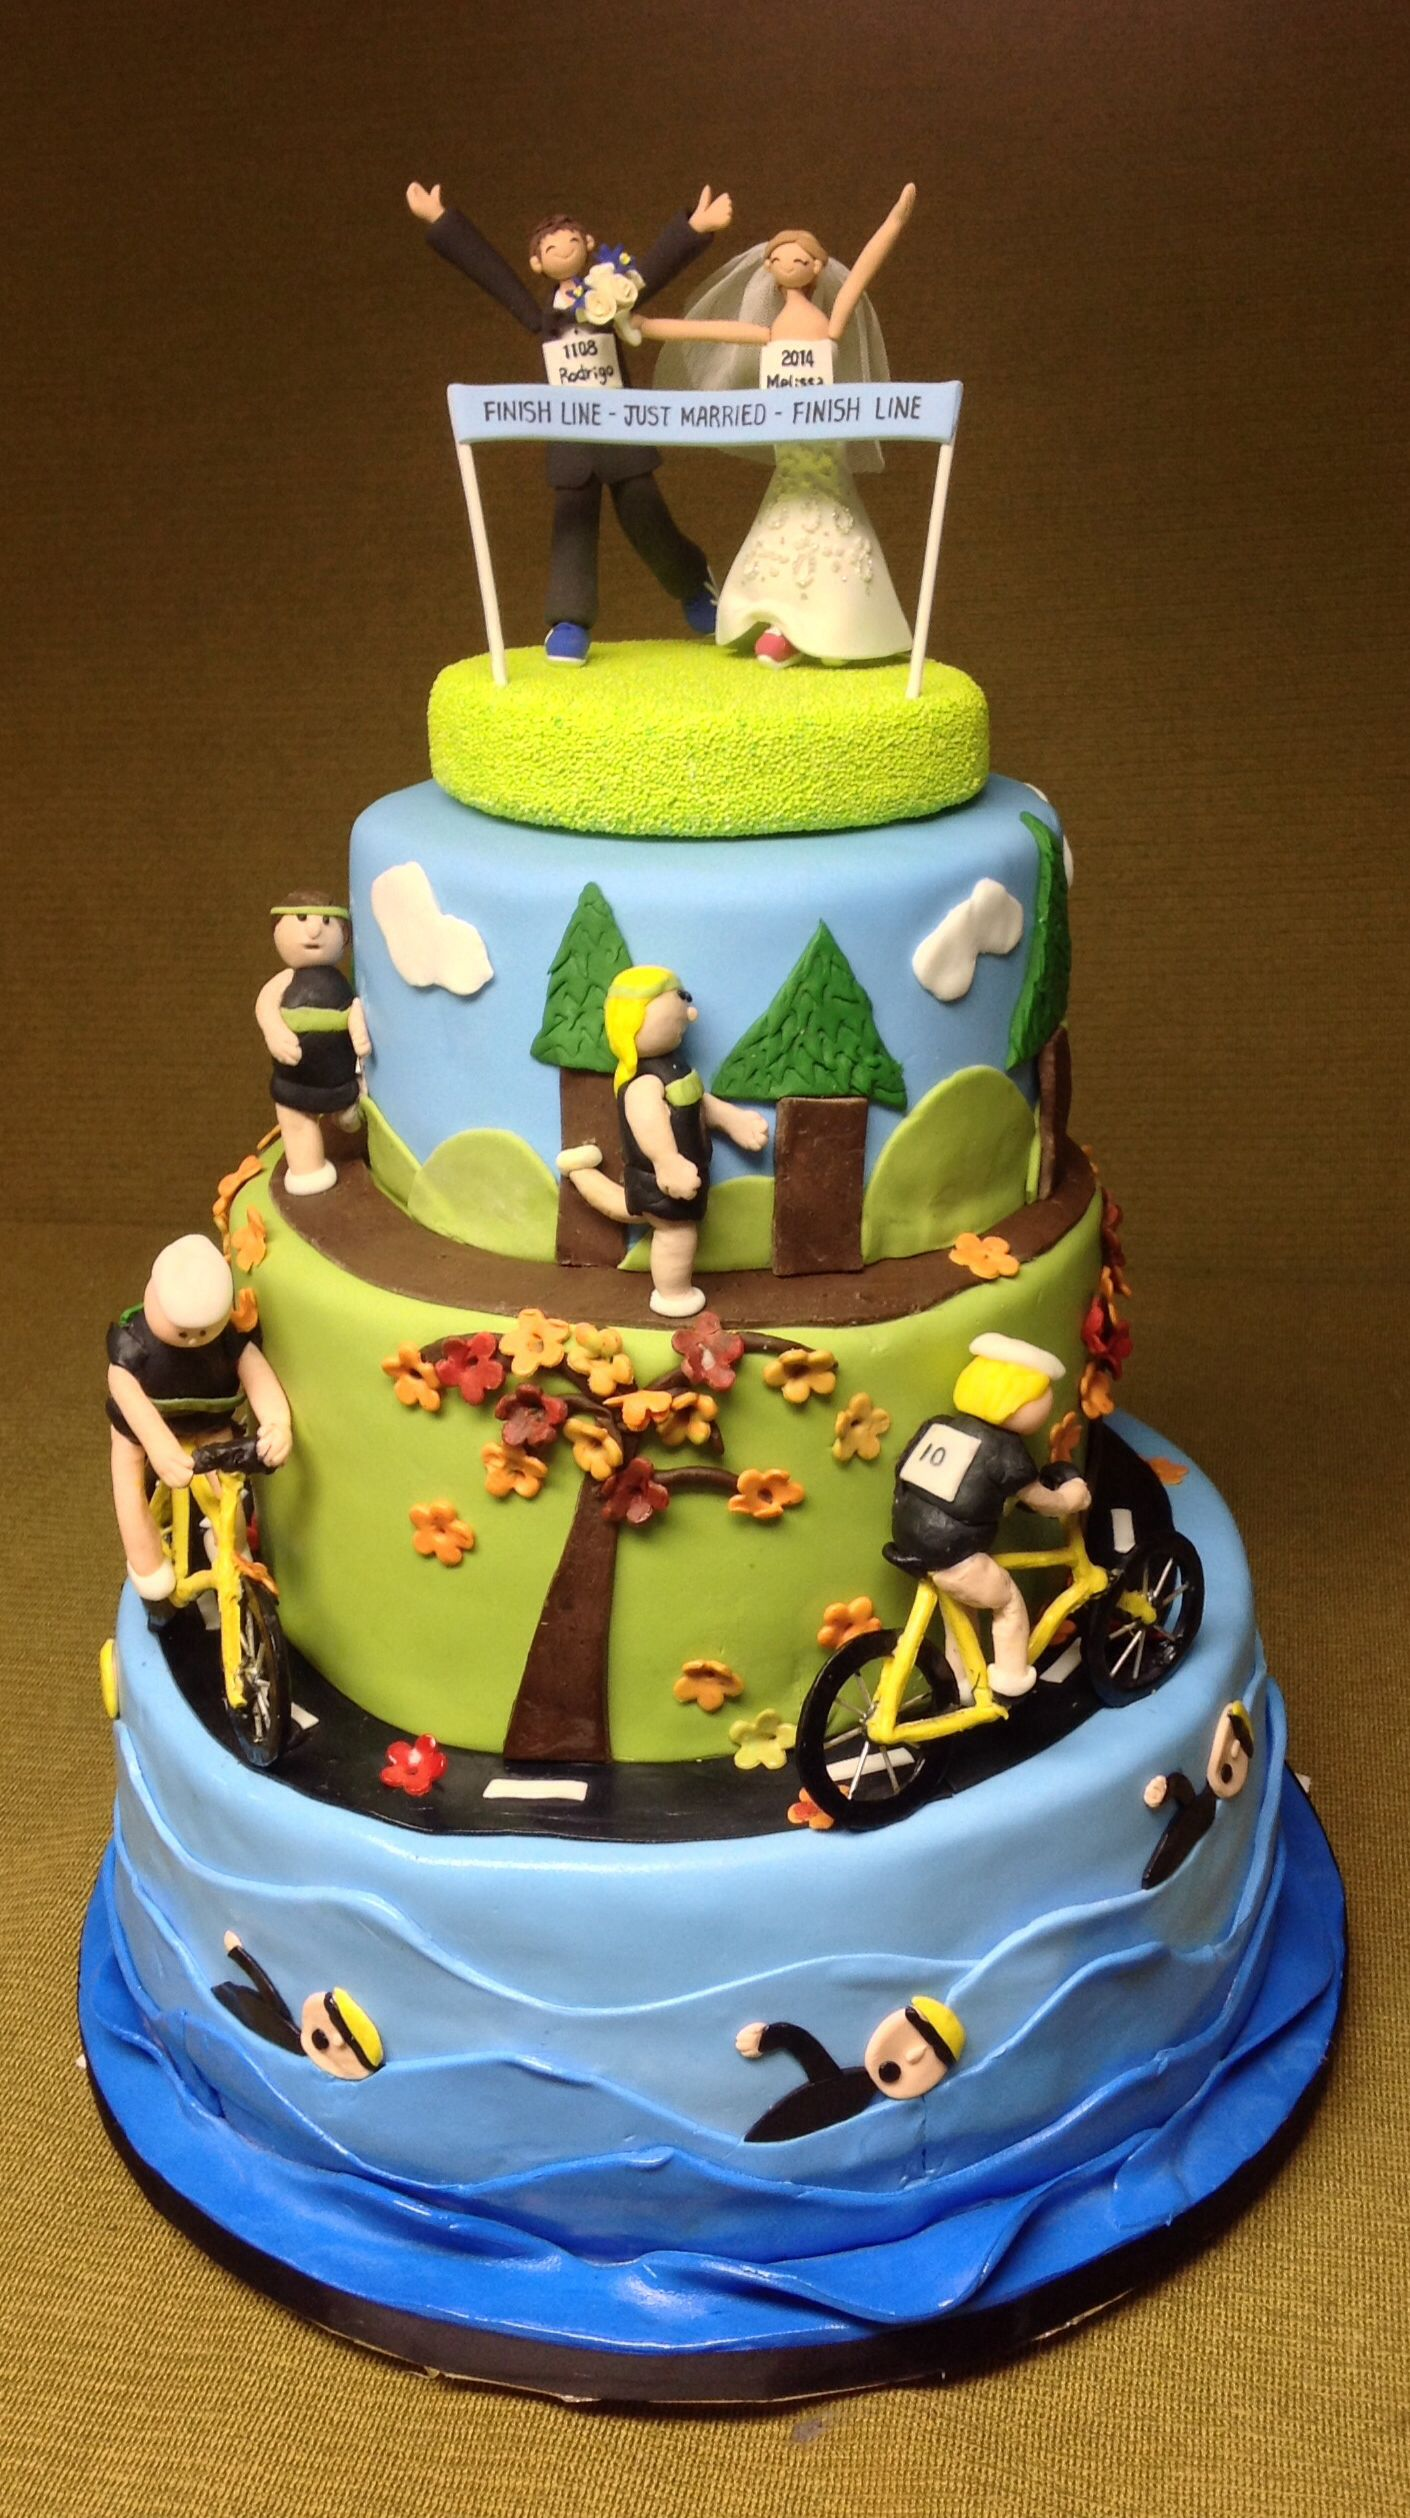 Triathlon Wedding Cake Golf Birthday Cakes Zombie